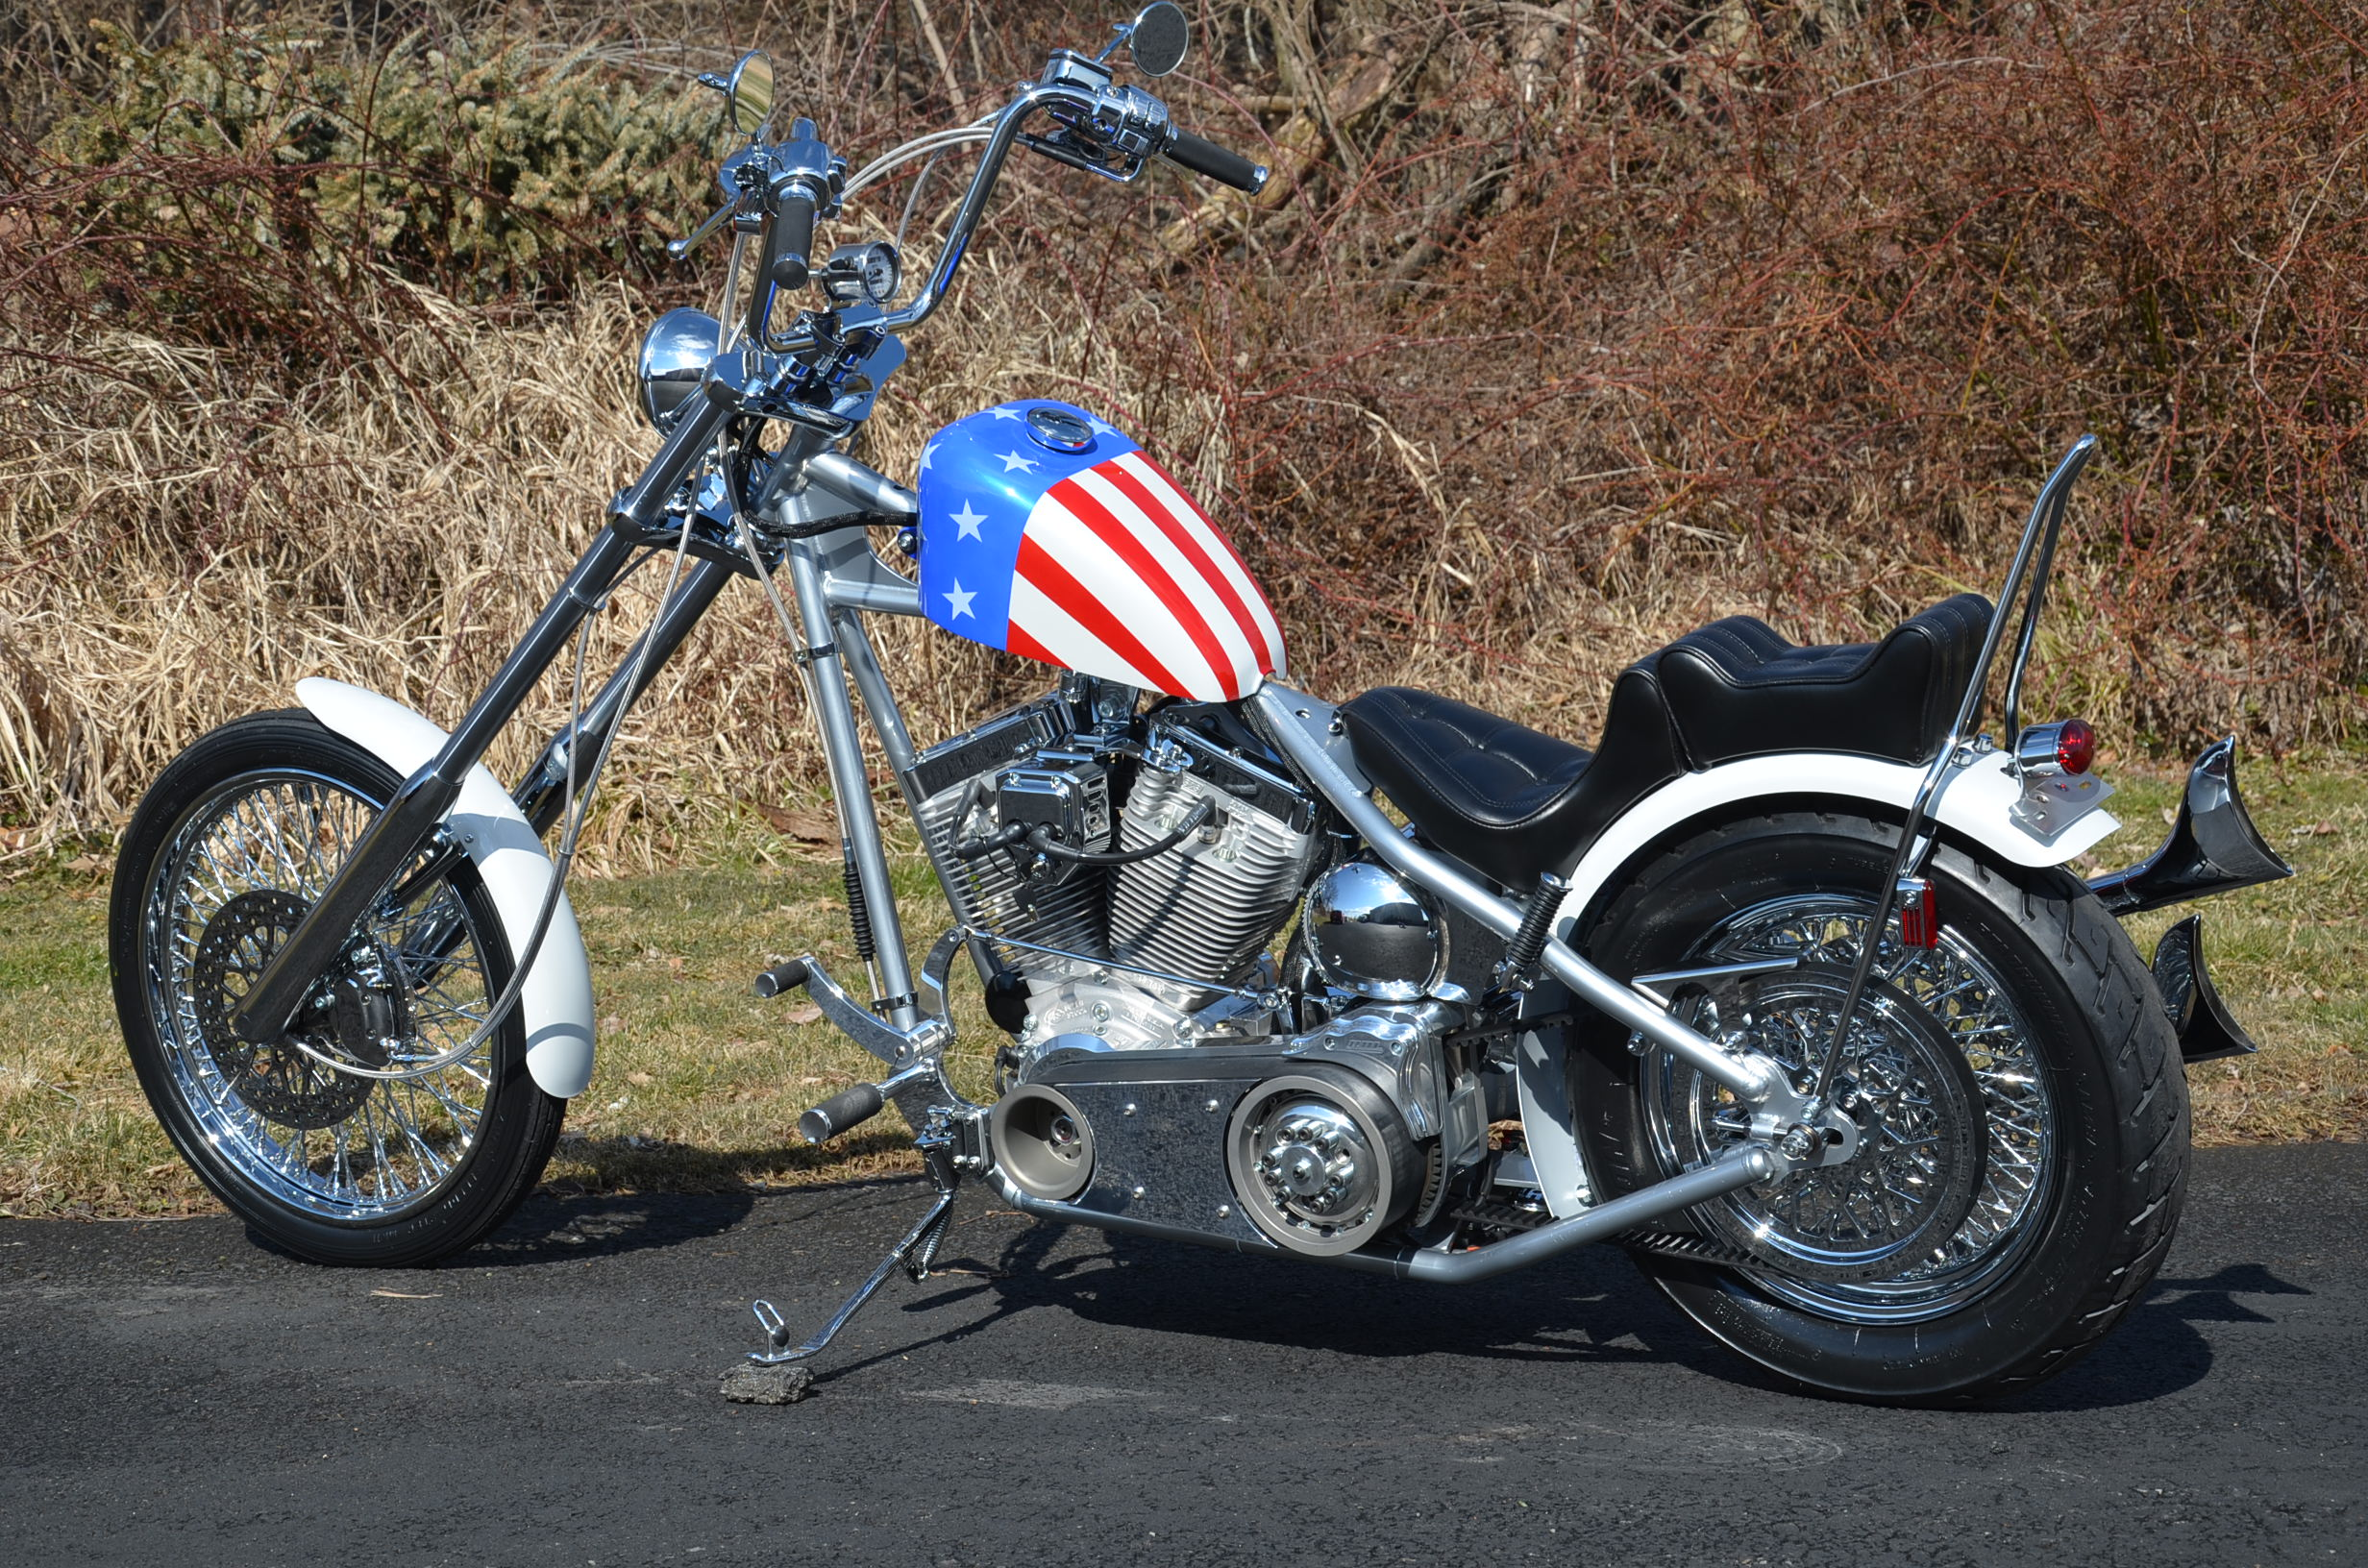 Acm 2013 s s 96 captain america american for sale on 2040 for American classic motors for sale